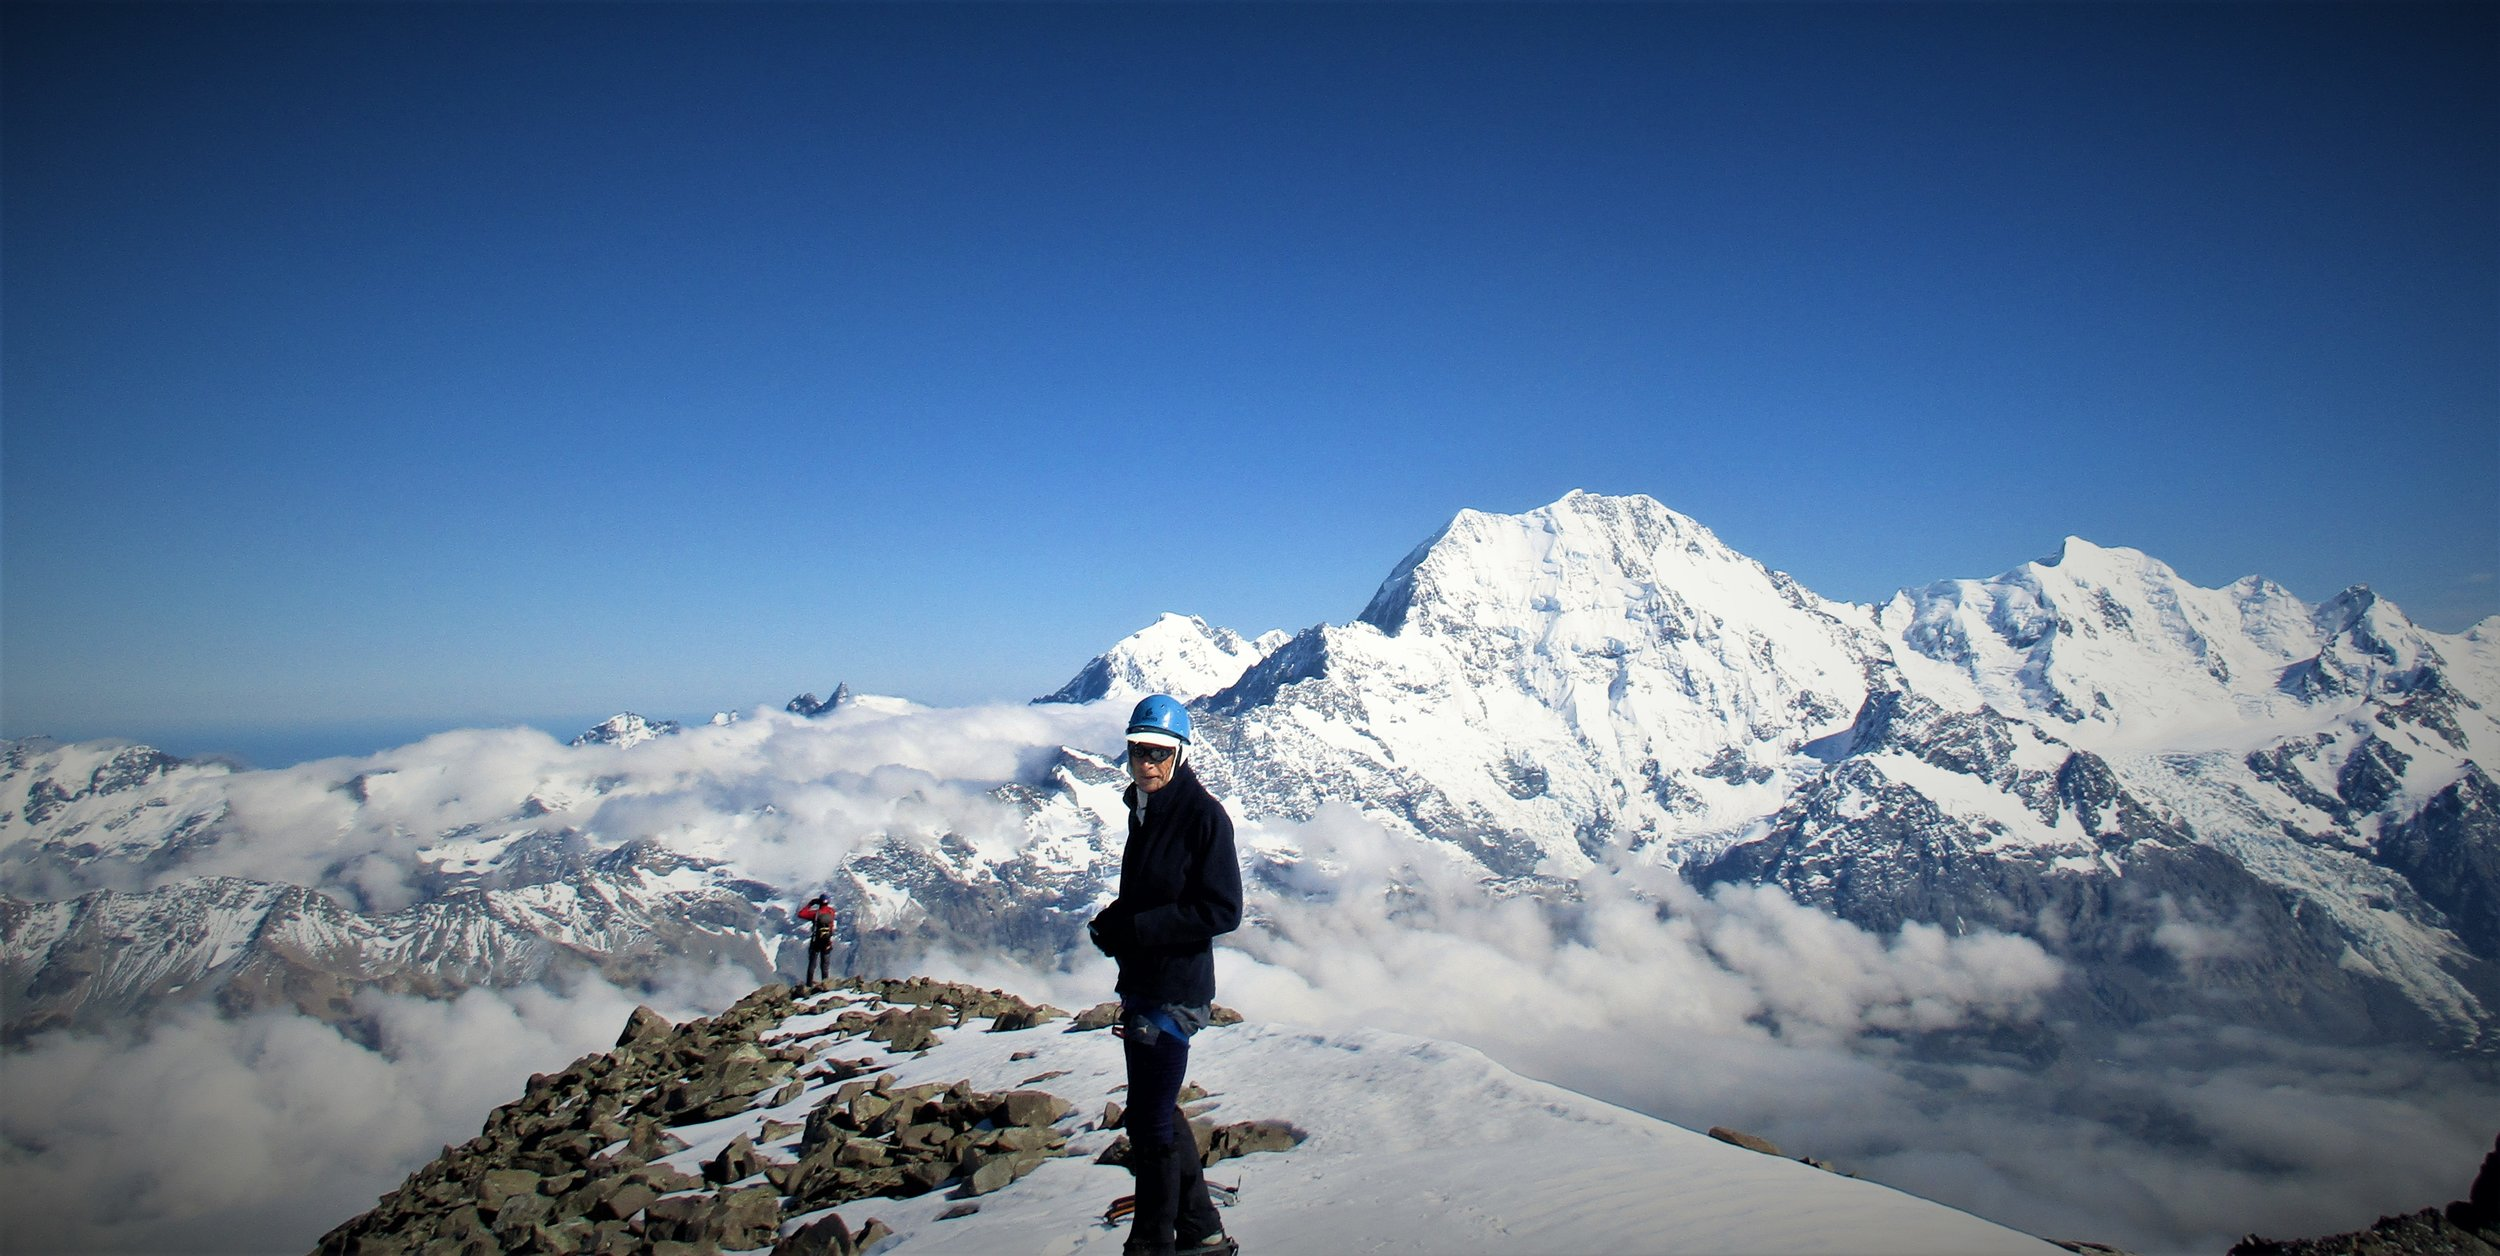 Ben looks into the Camera as George takes in the view of La Perouse, Aoraki,/Mt Cook and Mount Tasman from the large summit of the Nun's Viel.